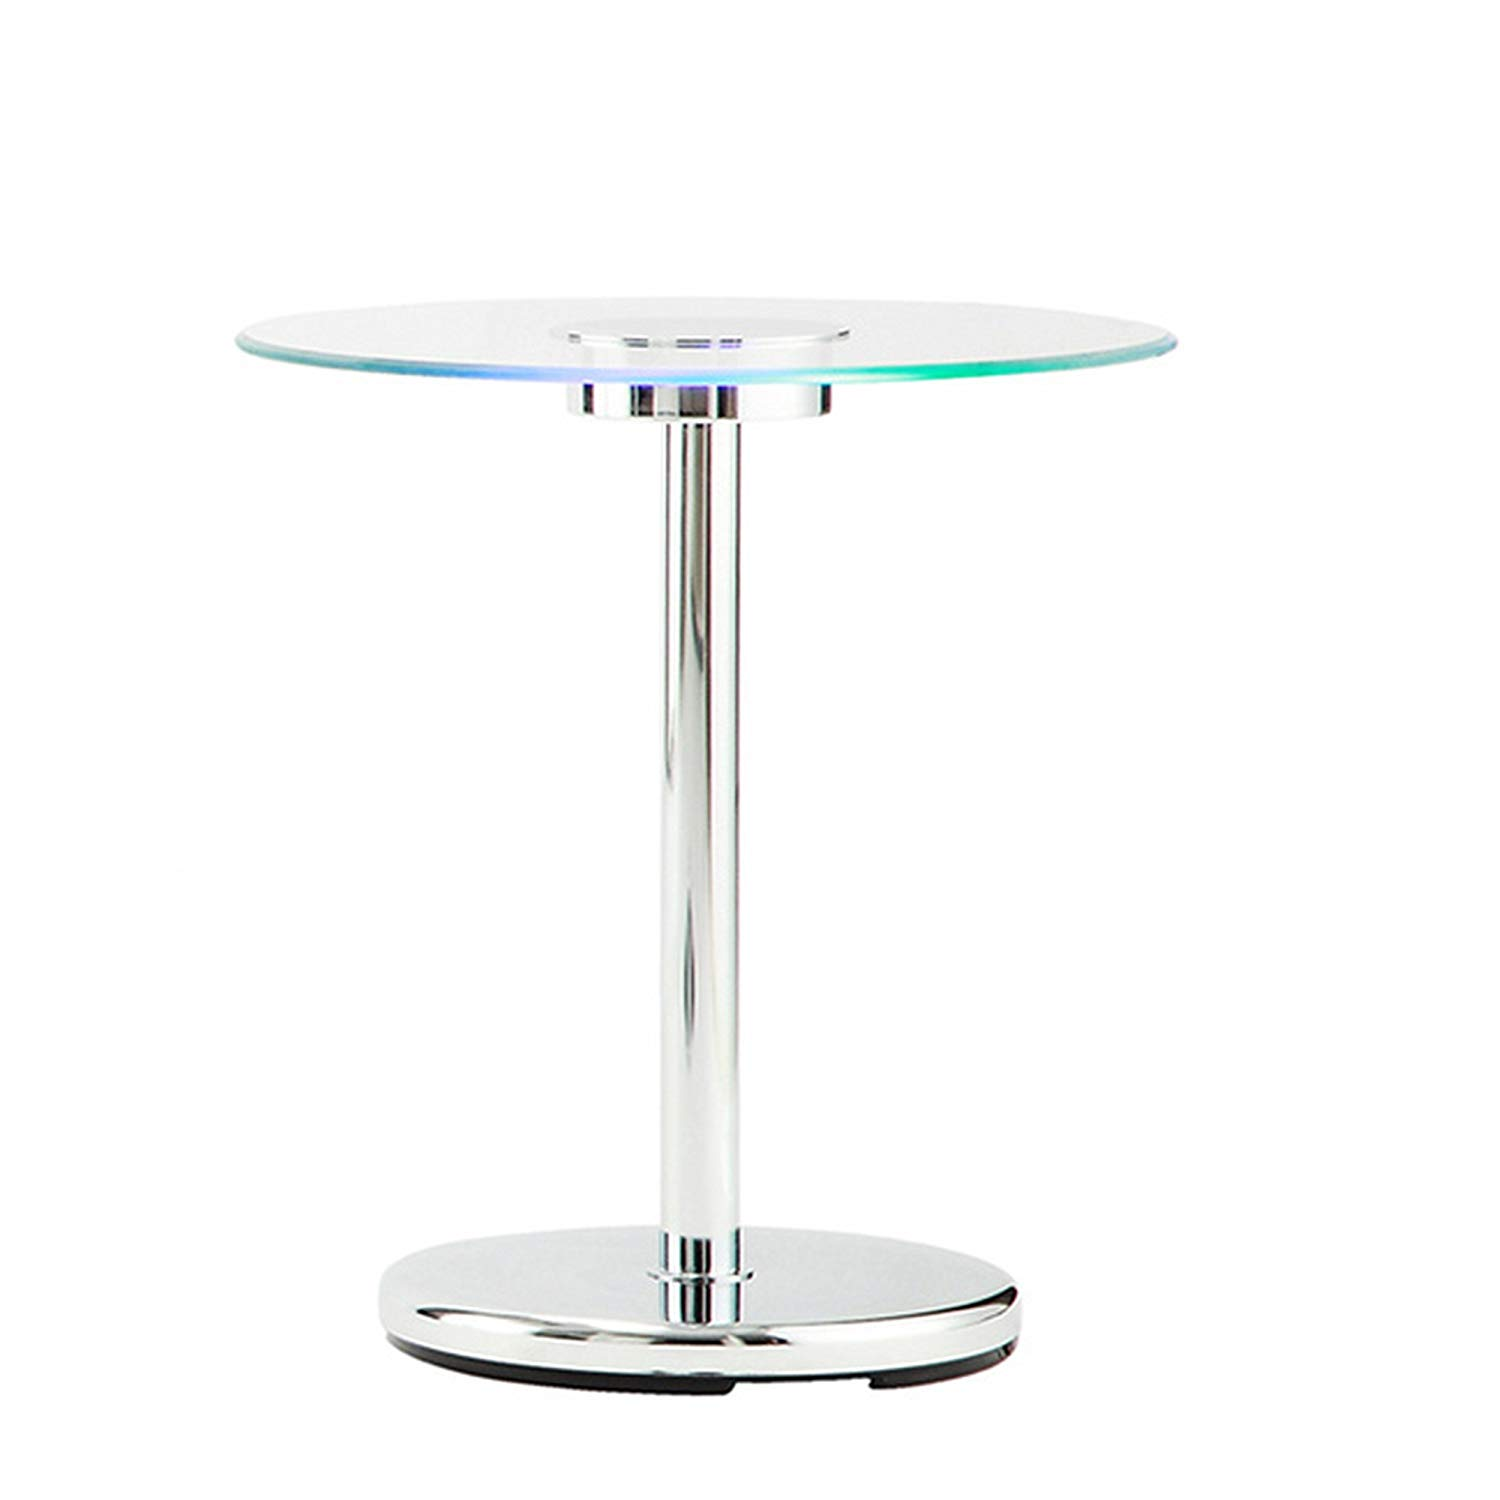 modhaus living modern style led accent tempered glass table top round shaped counter height end chrome metal frame room decor marble kids writing desk navy blue wicker bling lamps